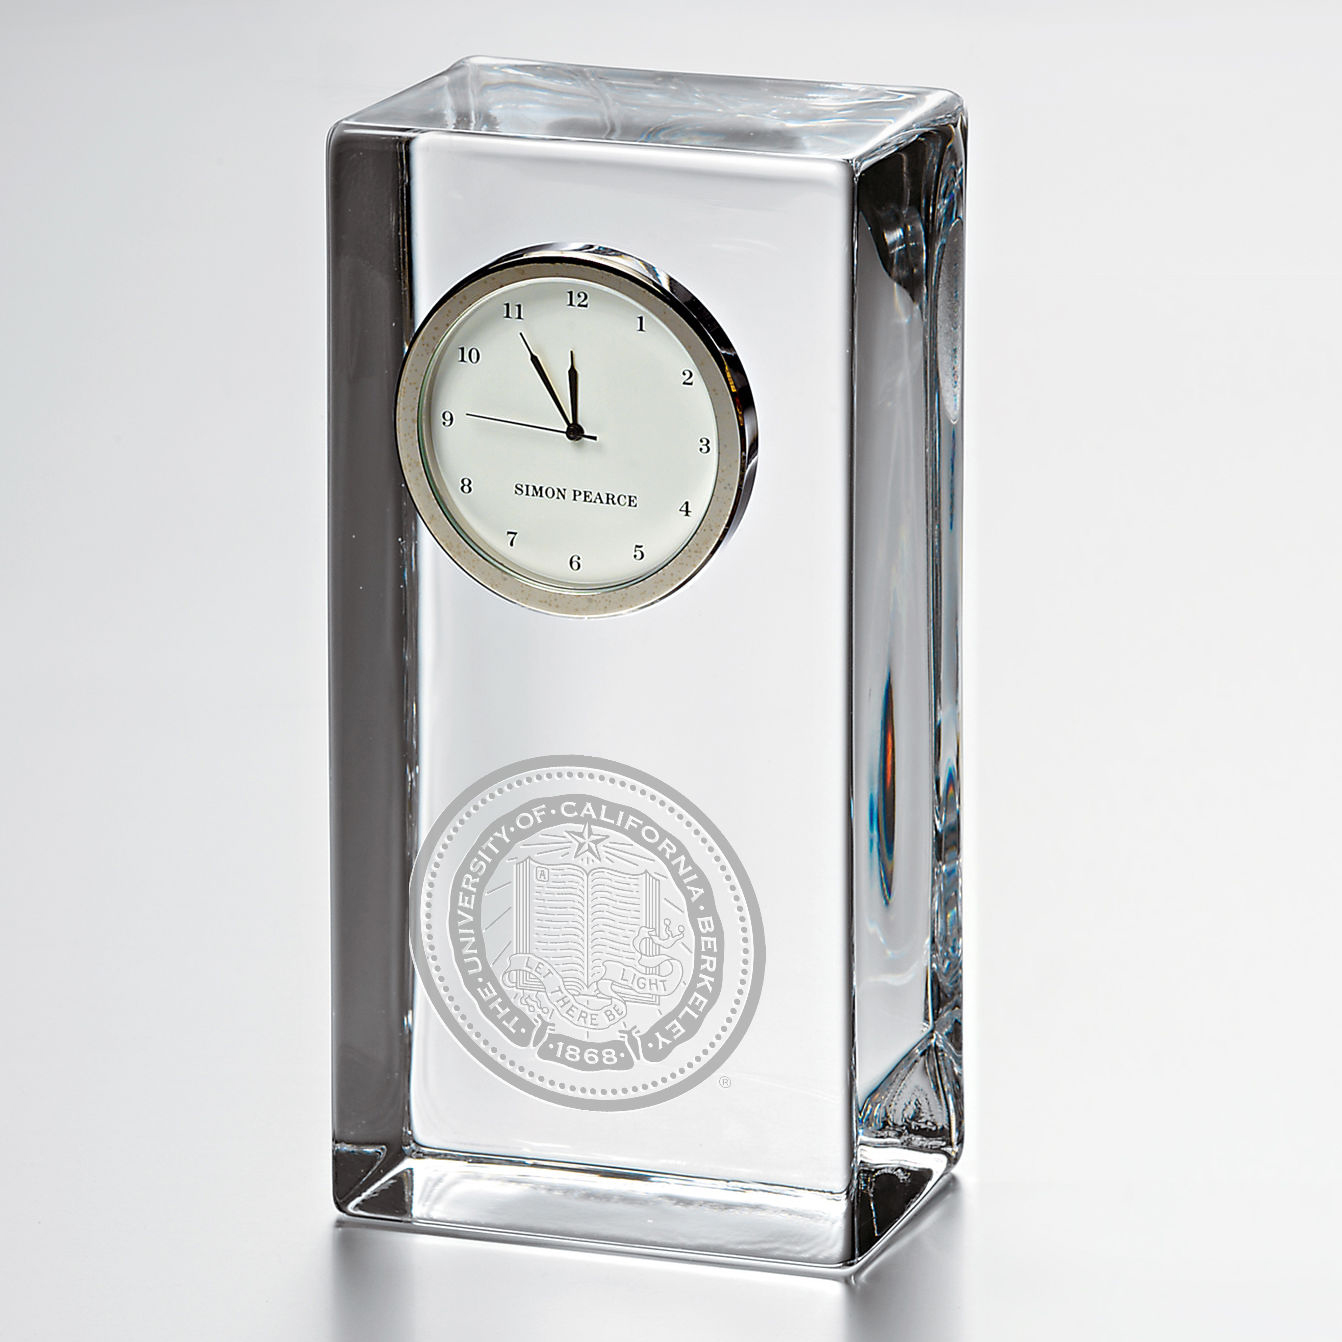 Berkeley Tall Glass Desk Clock by Simon Pearce